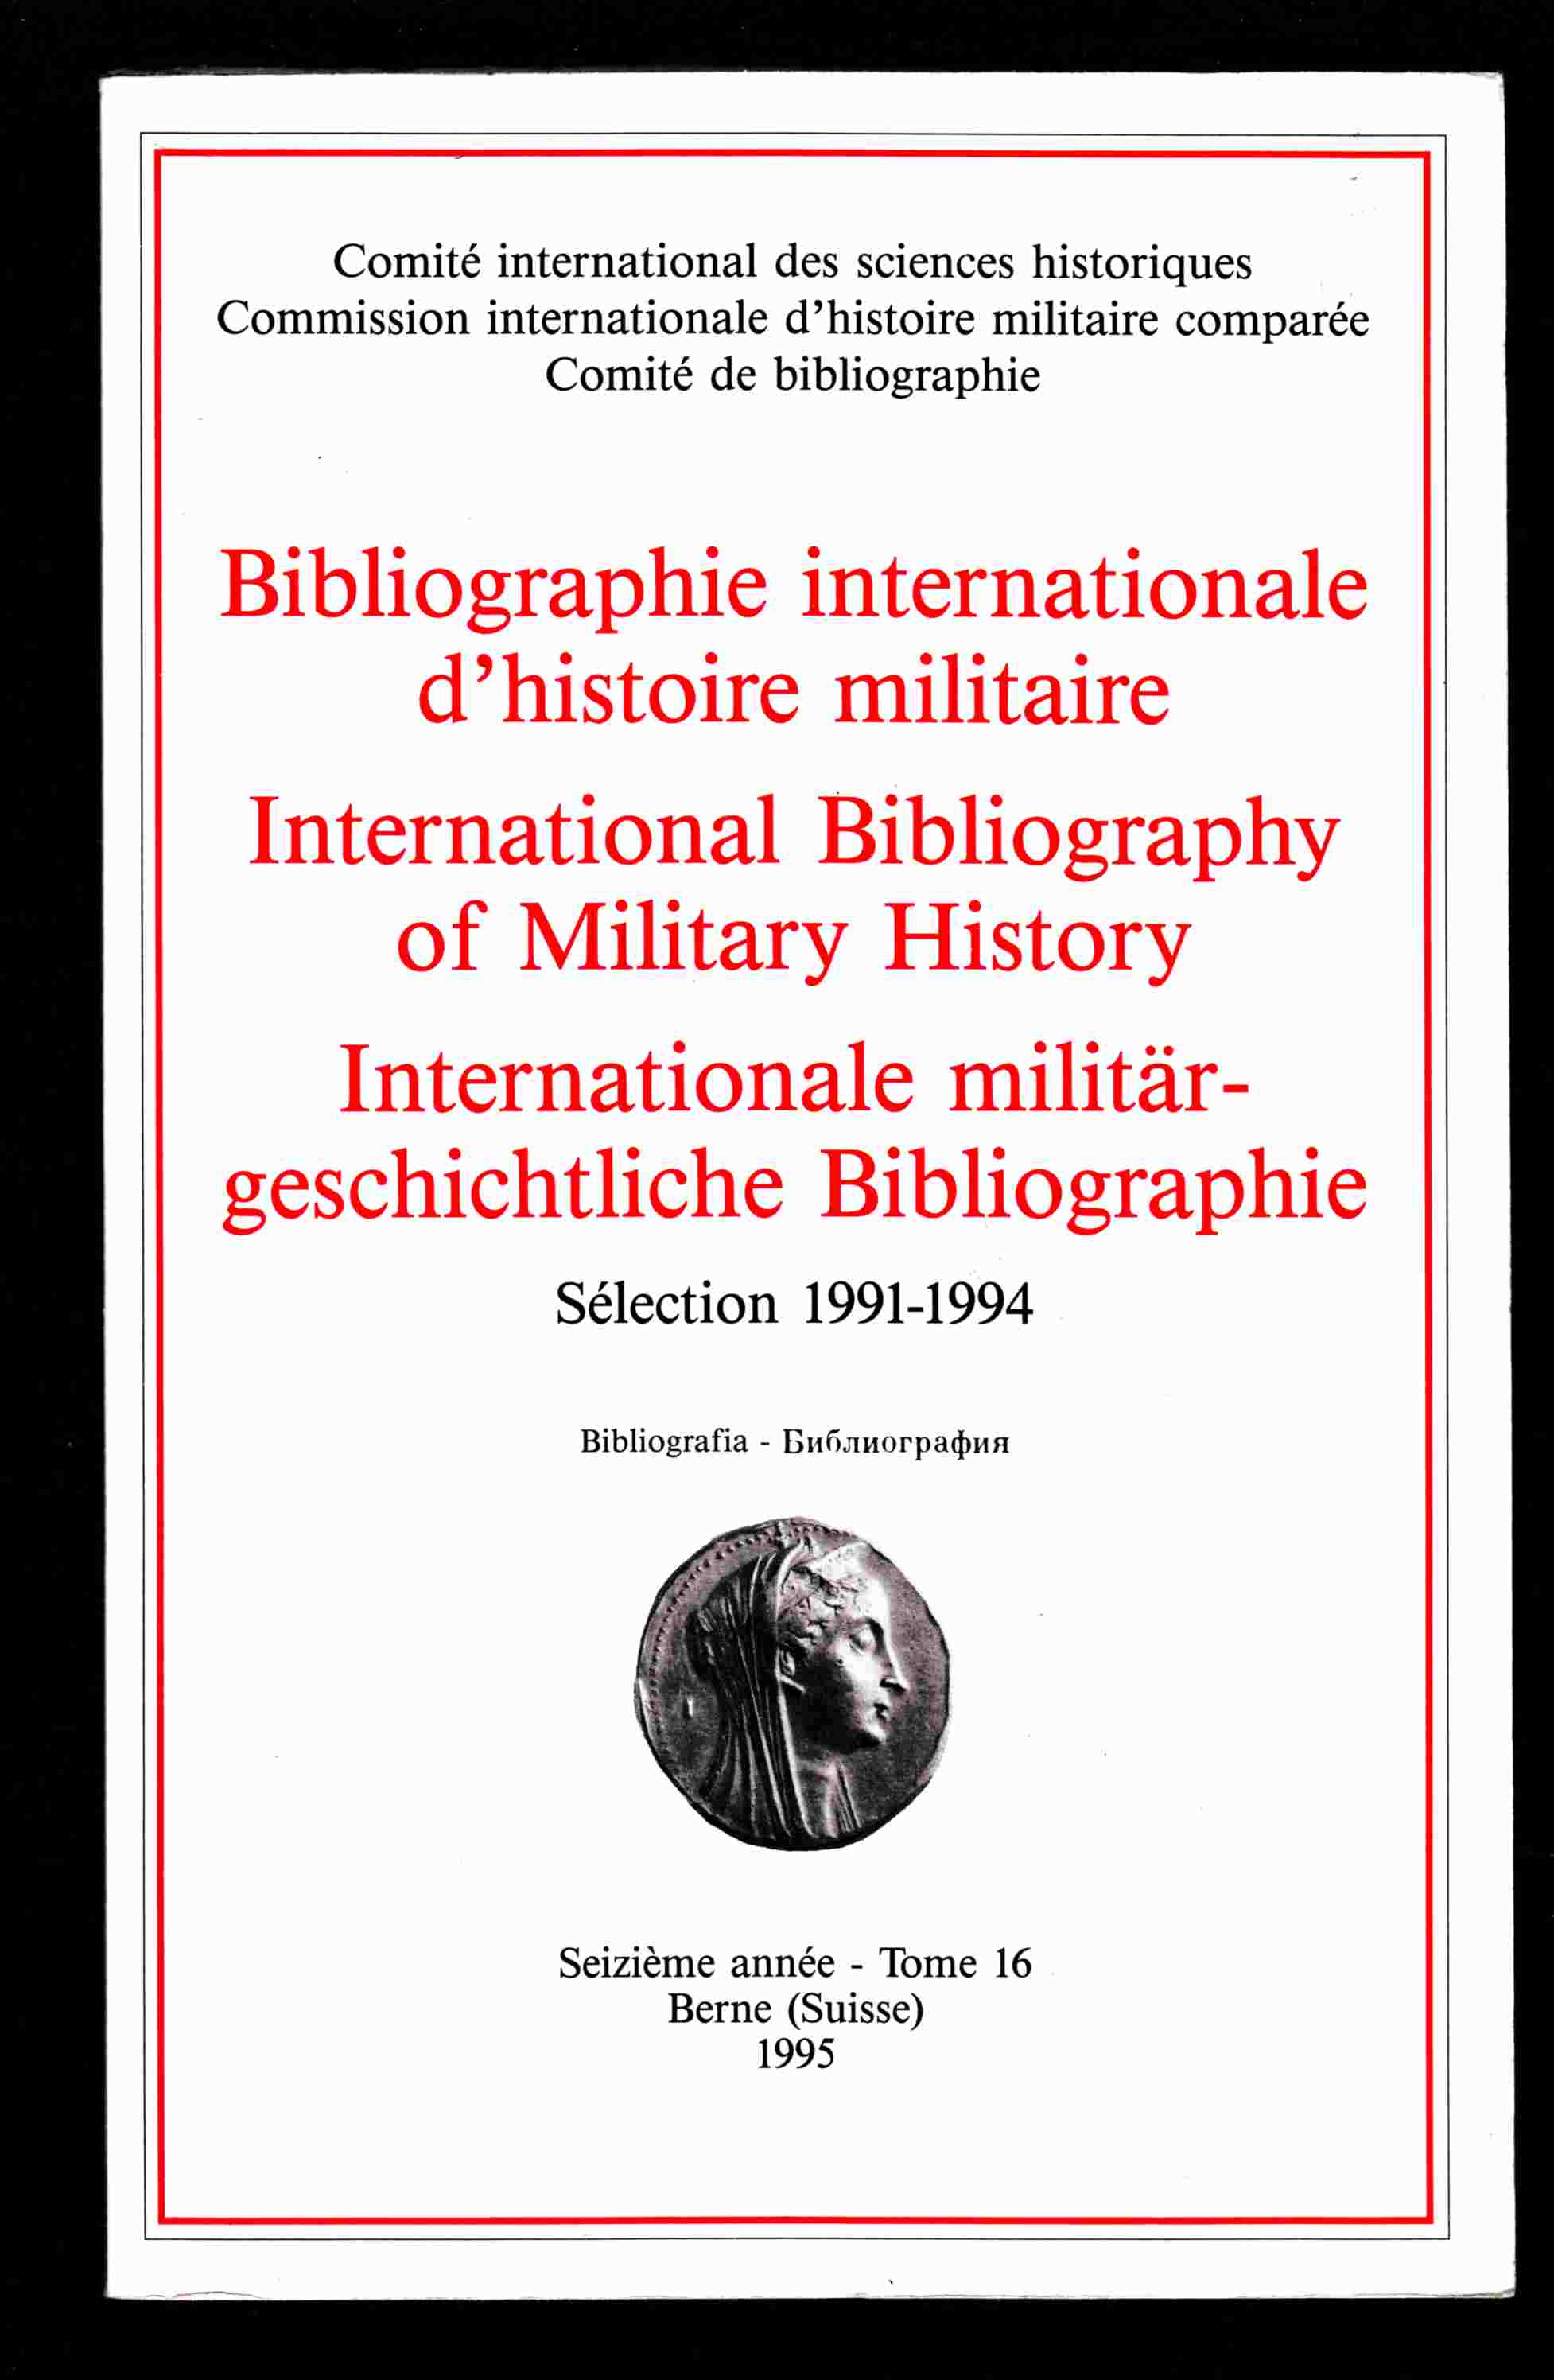 Image for Bibliographie Internationale D'Histoire Militaire / International Bibliography of Military History / Internationale Militargeschichtliche Bibliographie Selection 1991-1994